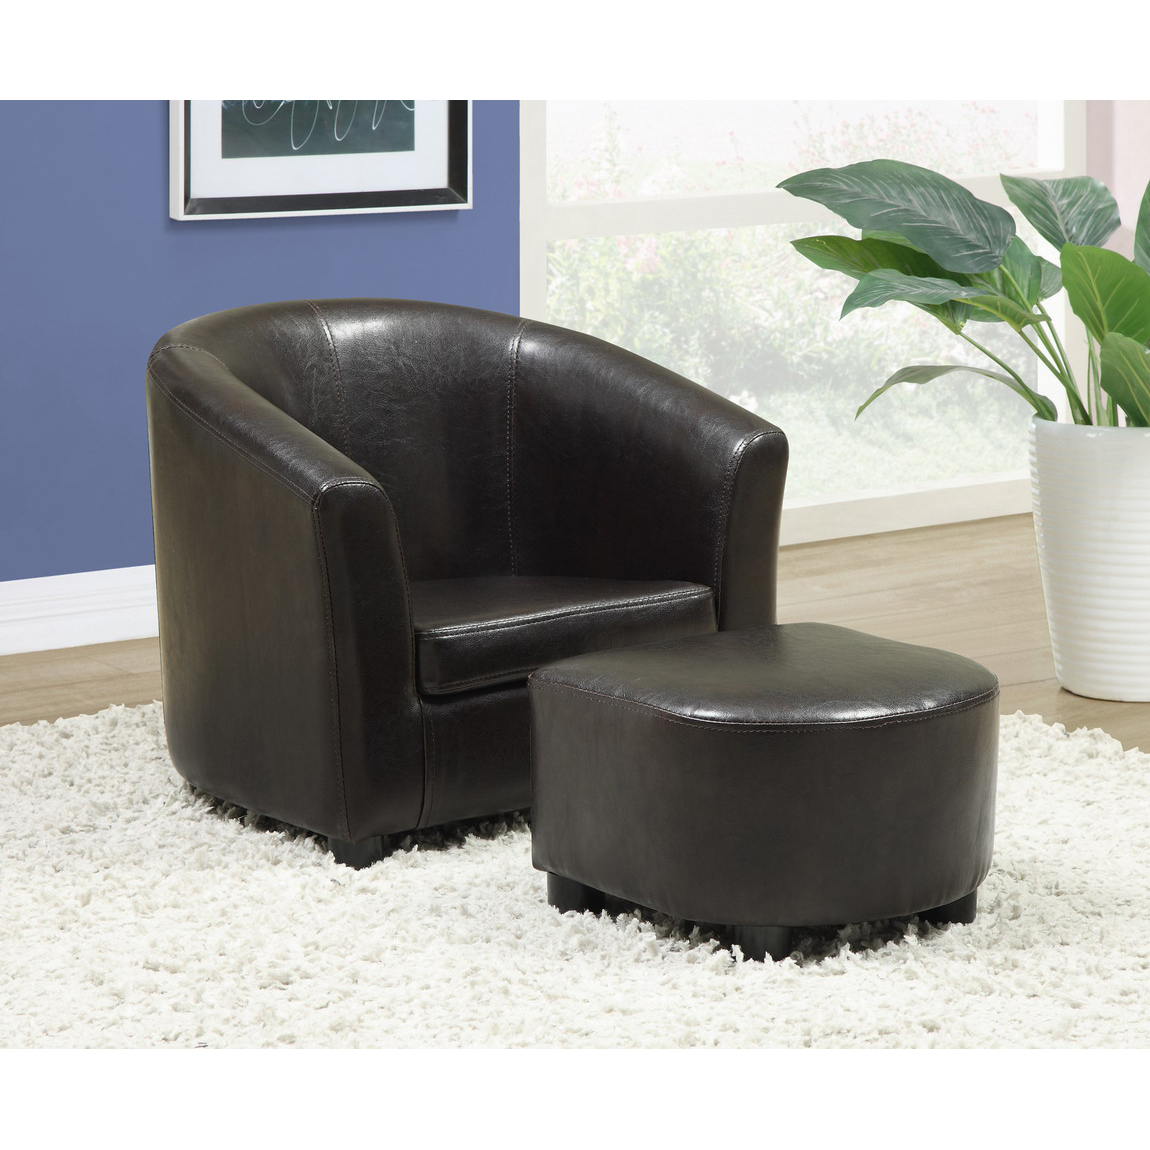 Living Room Chair With Ottoman Furniture Leather Chair And Ottoman Oversized Leather Chair And